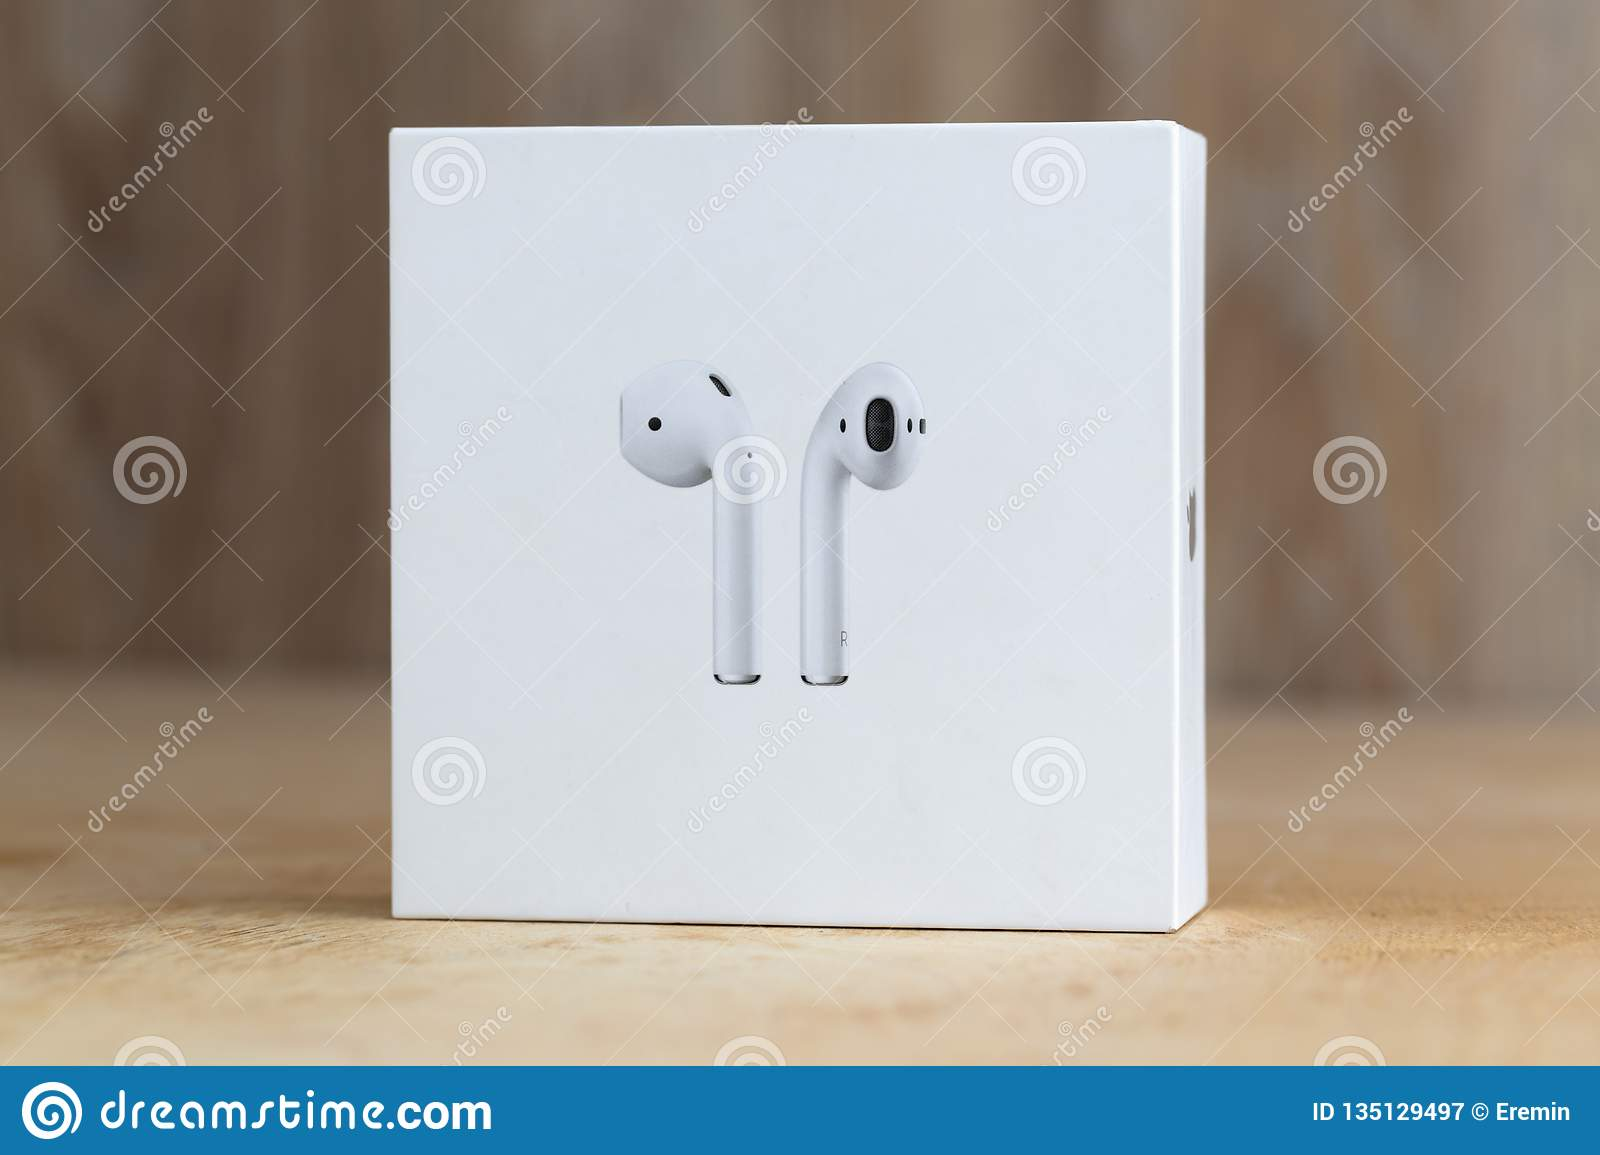 Apple Airpods In A Box On A Wooden Surface Editorial Photography